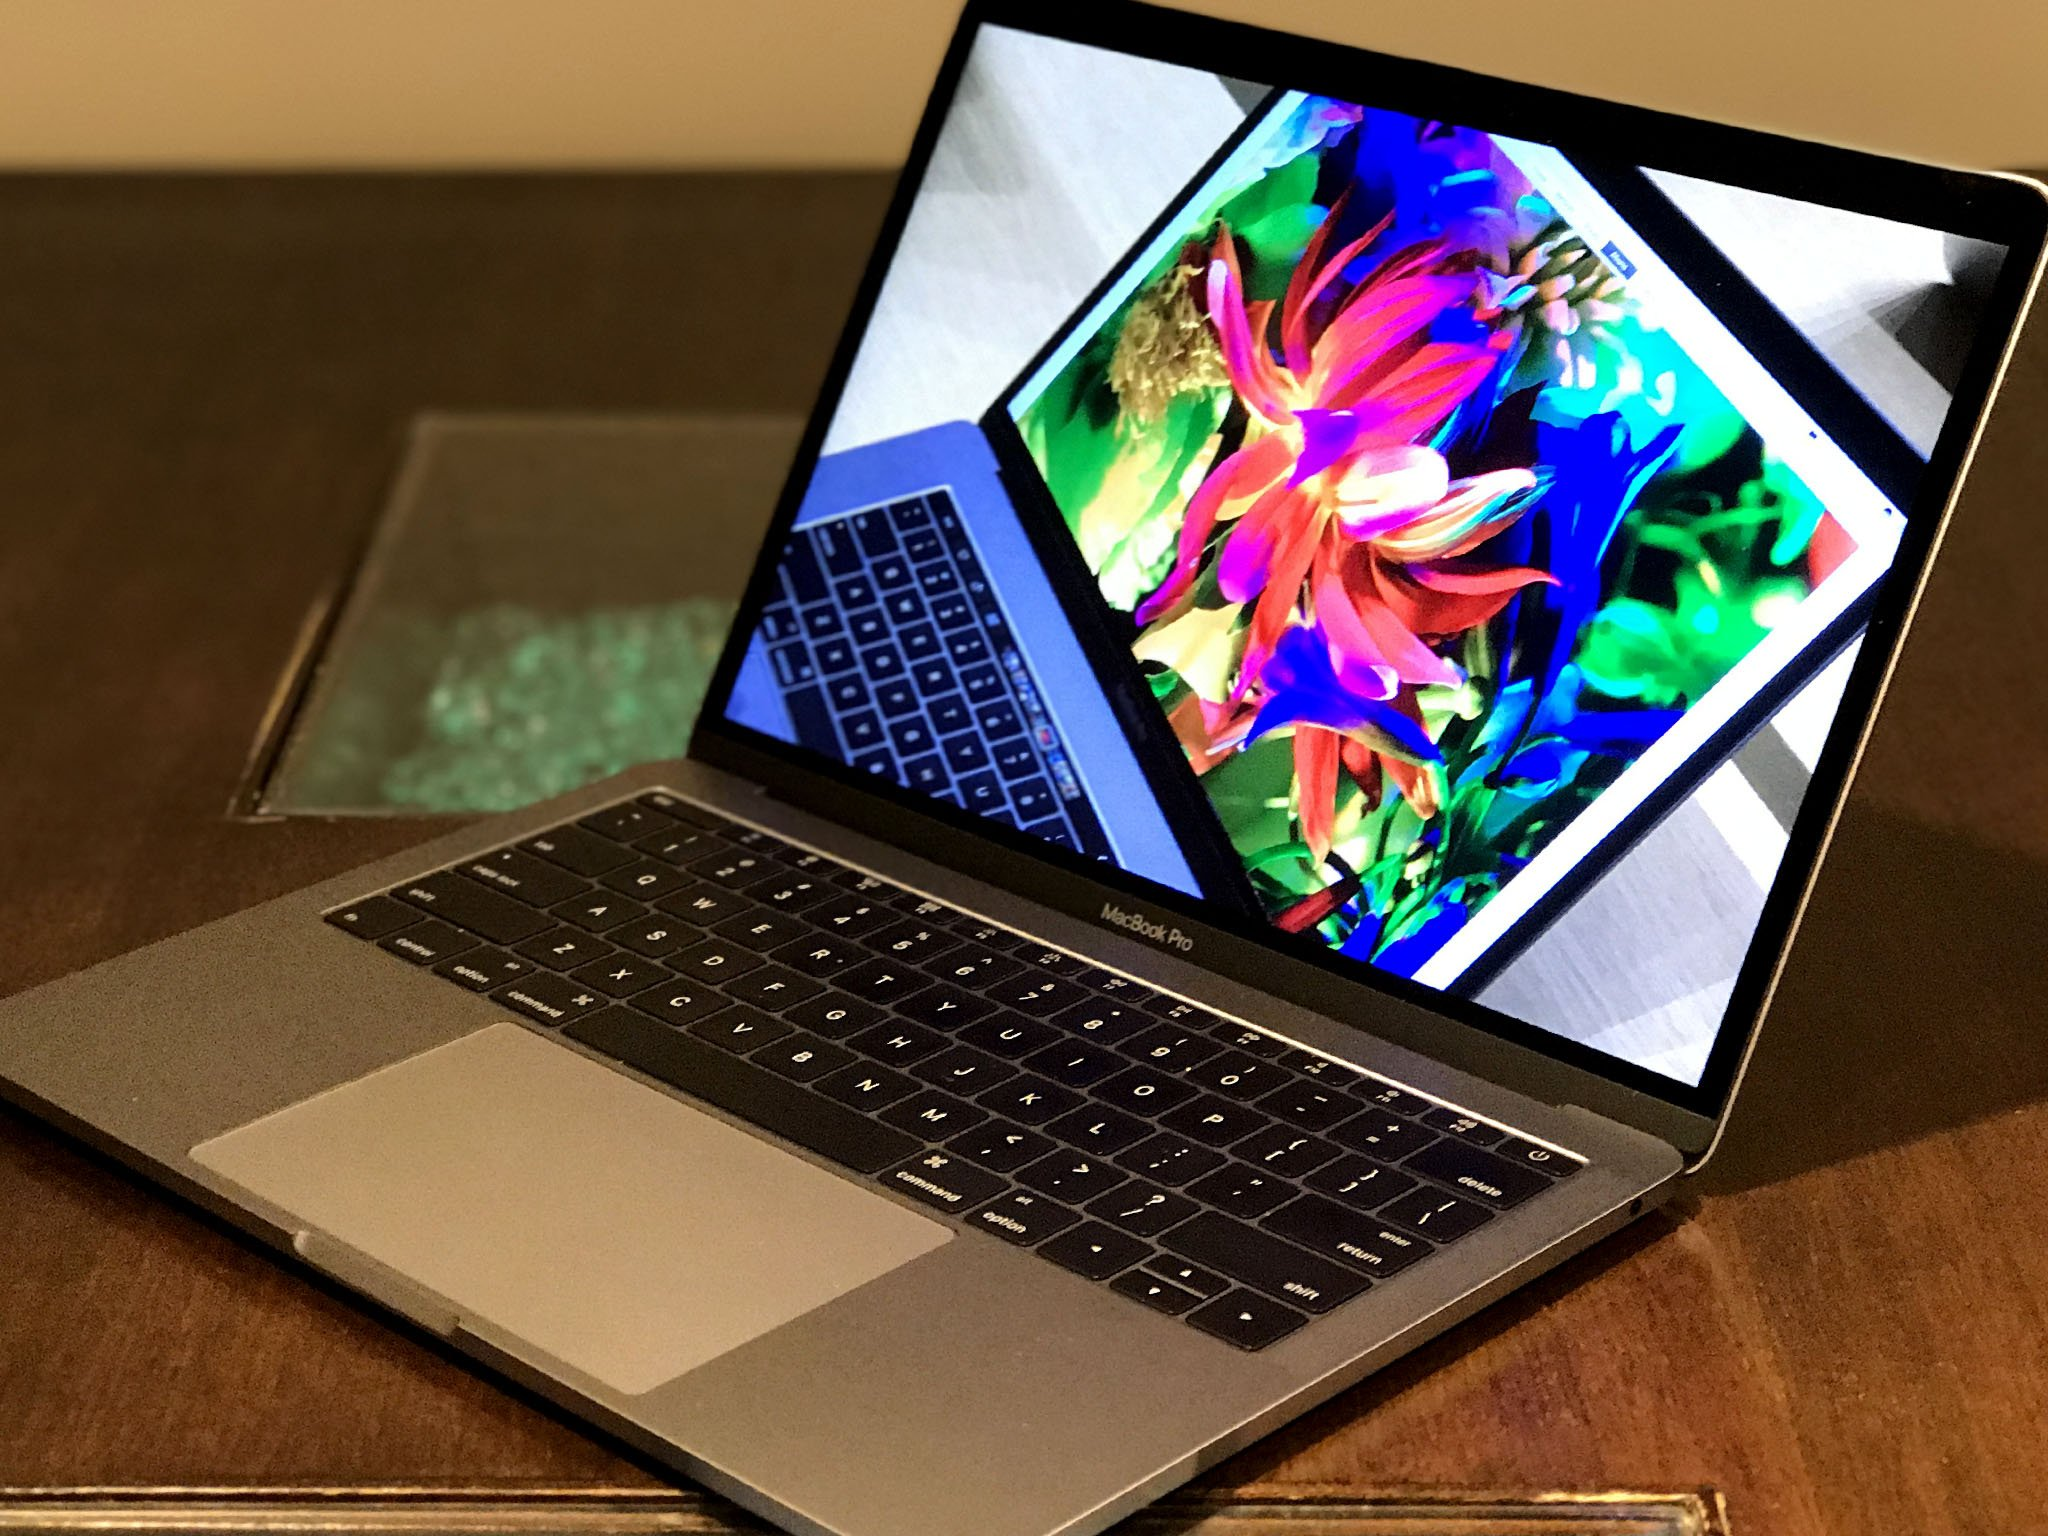 13 Inch Laptop Cute Wallpaper Here S Why The New Macbook Pros Lost The Startup Chime Imore